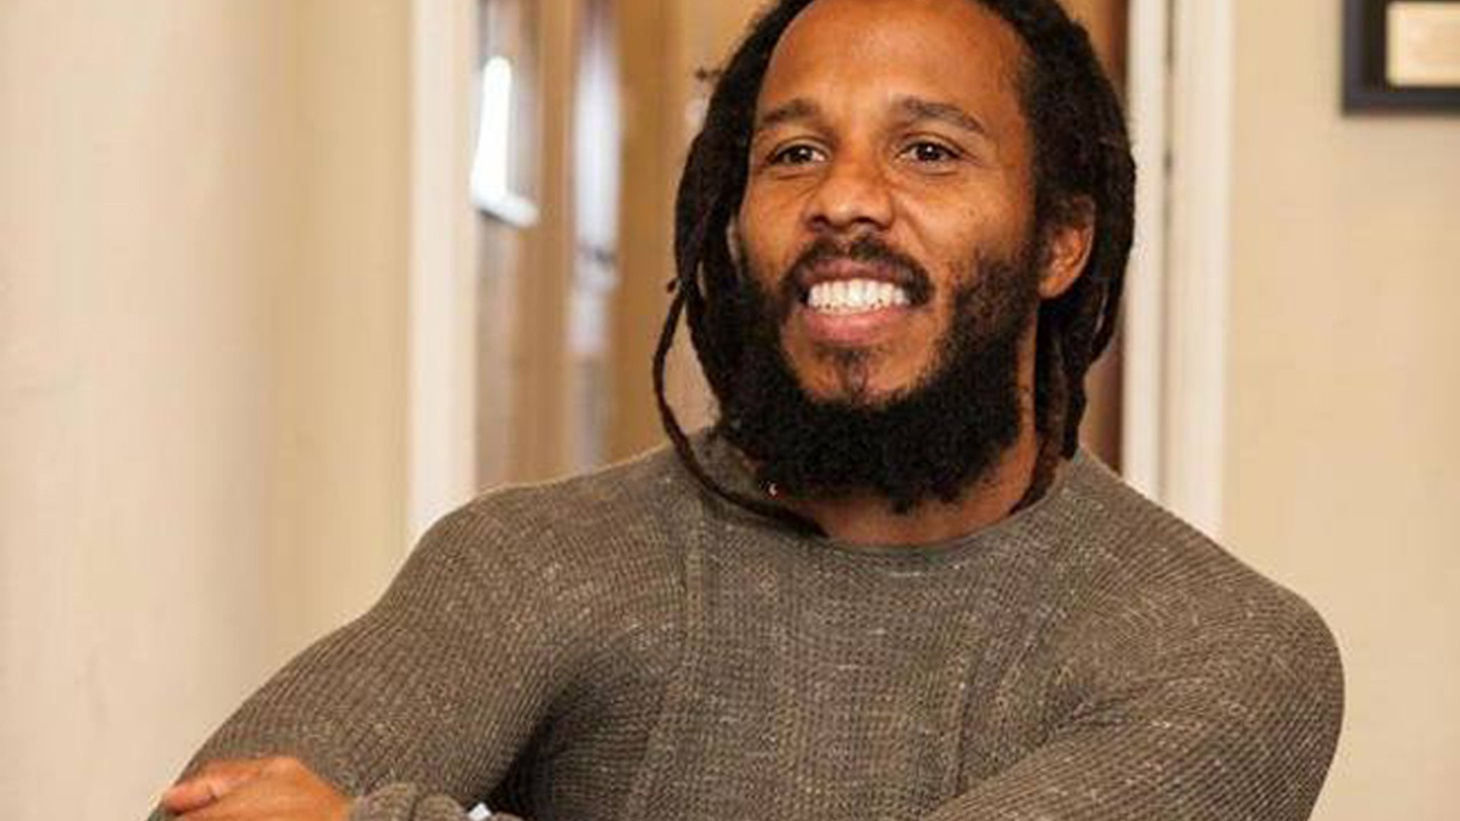 Ziggy Marley focuses his creative energy on spreading a message of conscious humanity.